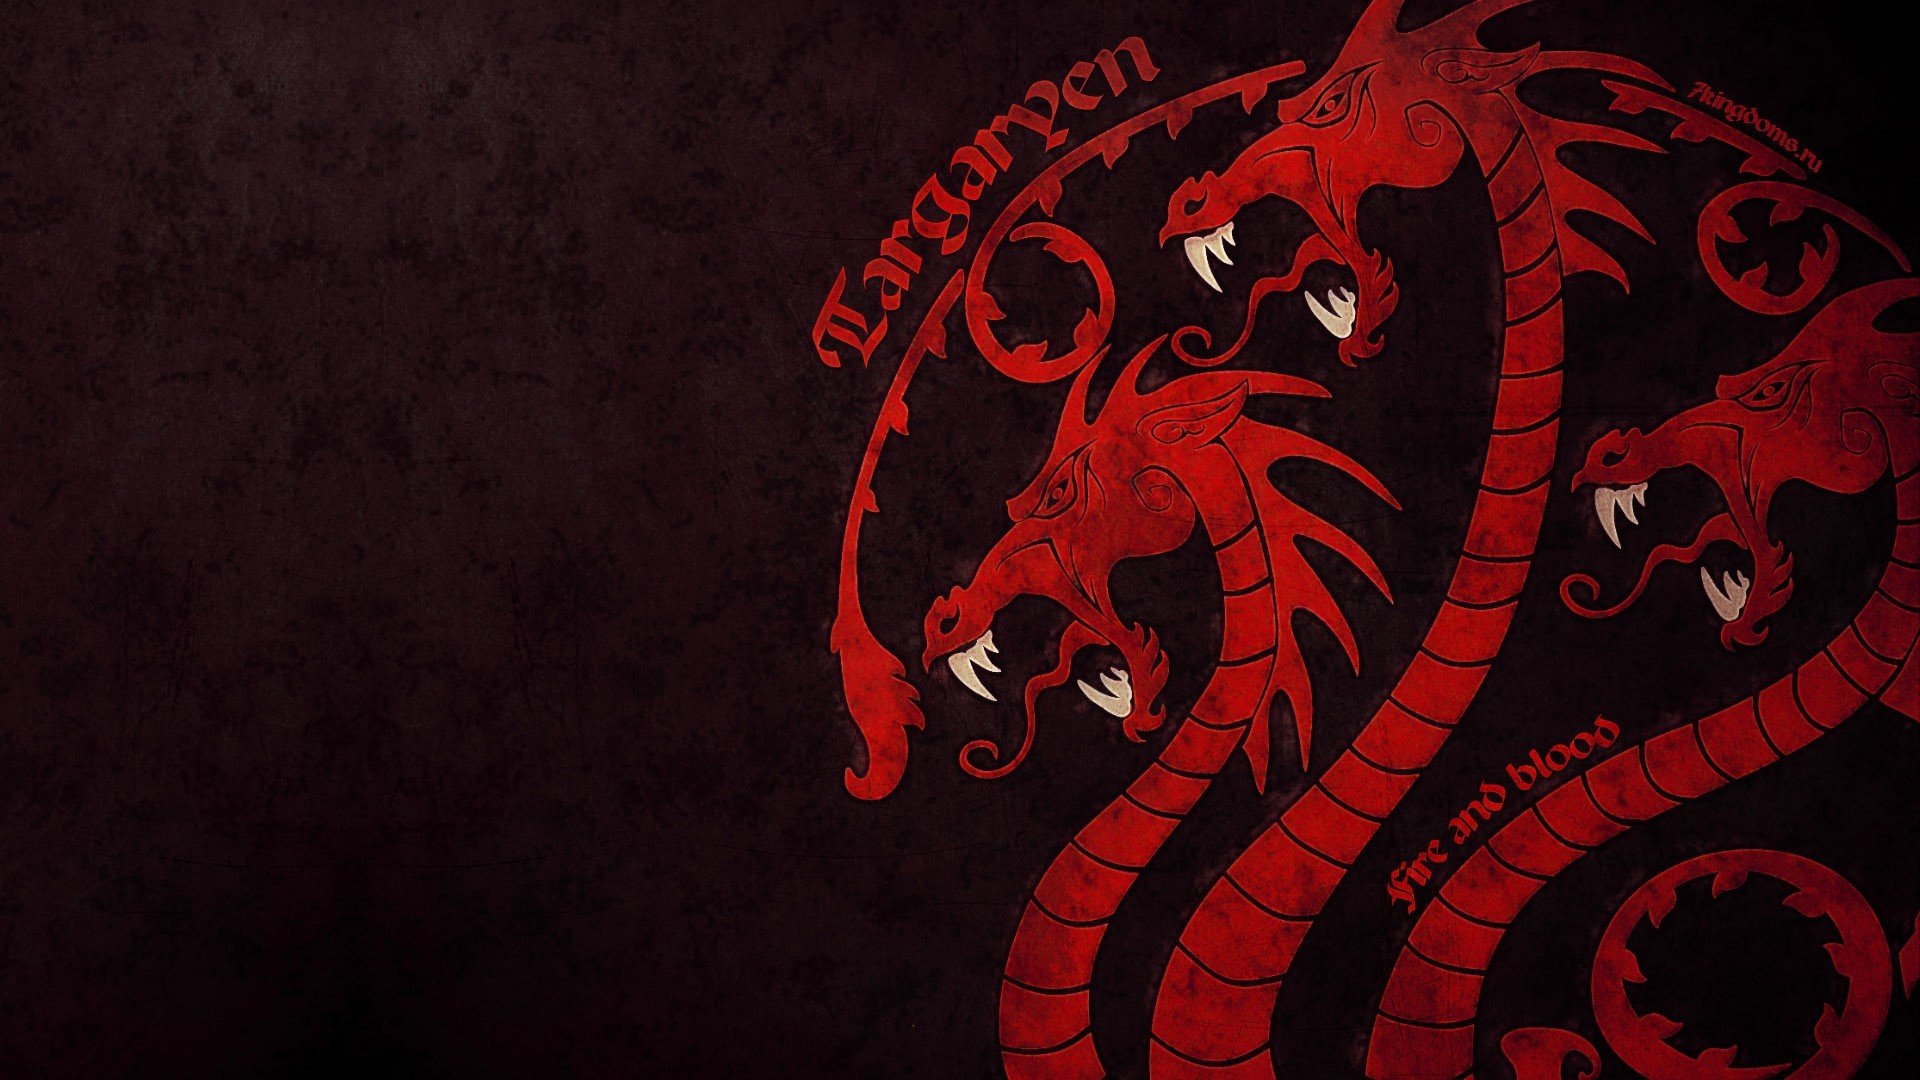 Game Of Thrones Desktop Wallpaper Download Free Backgrounds For